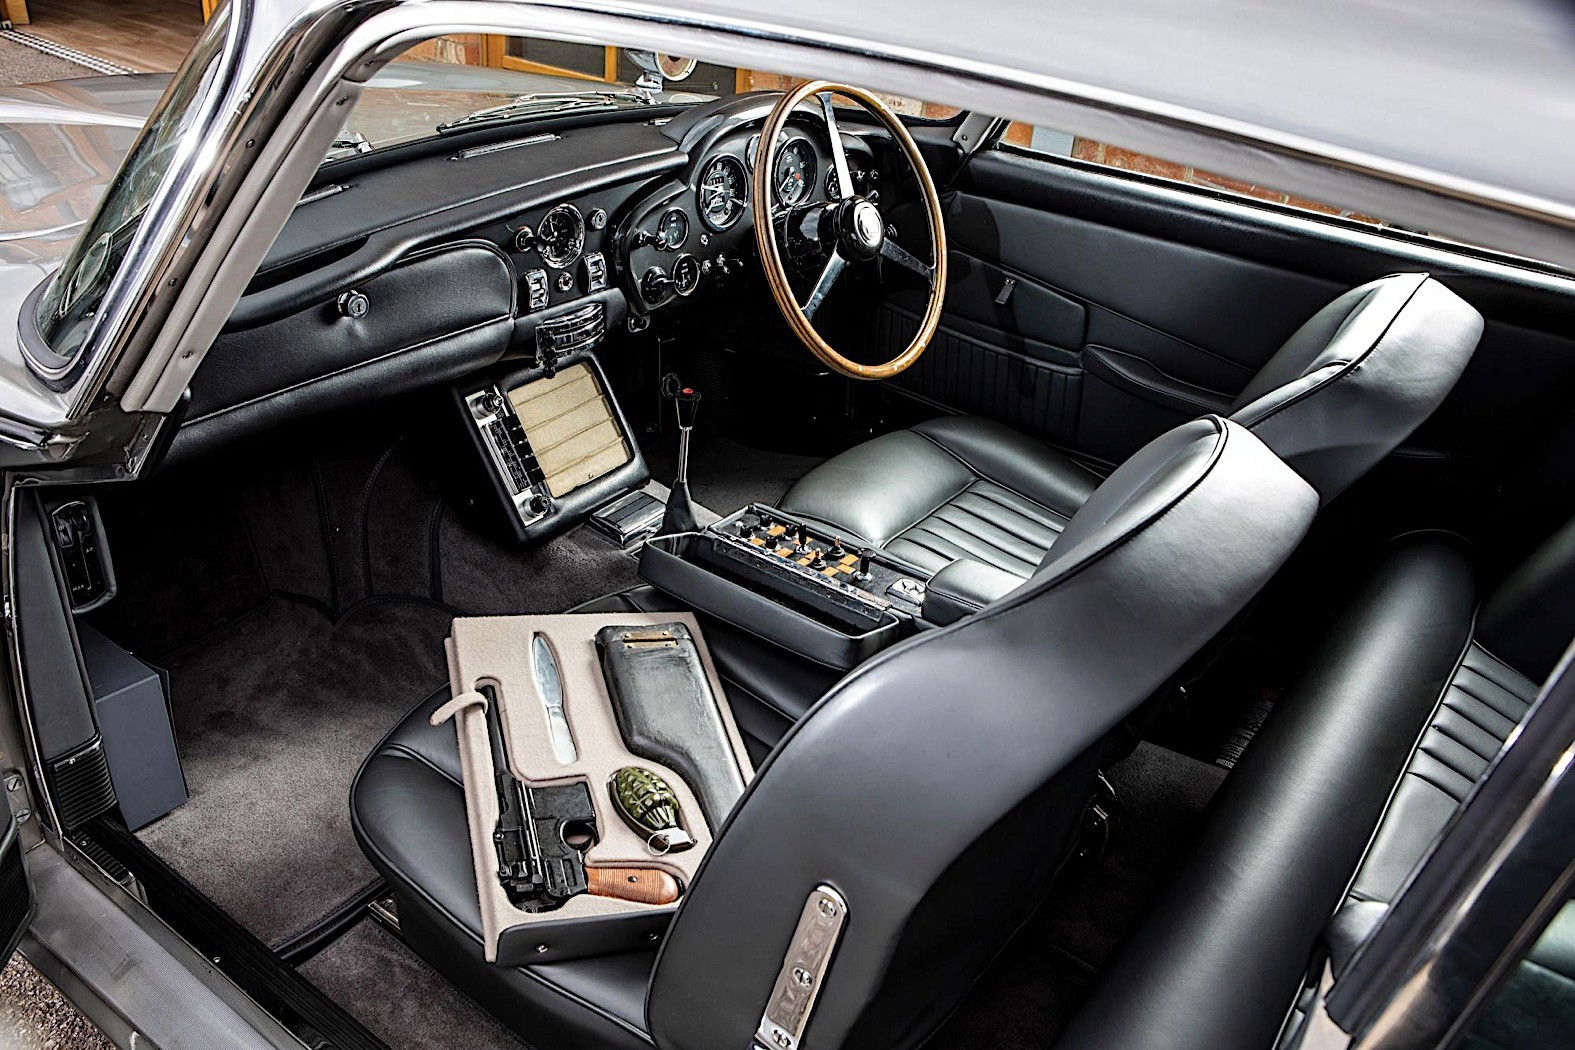 Bond's 1965 Aston Martin DB5 Pops Up in Retro-Styled Auction